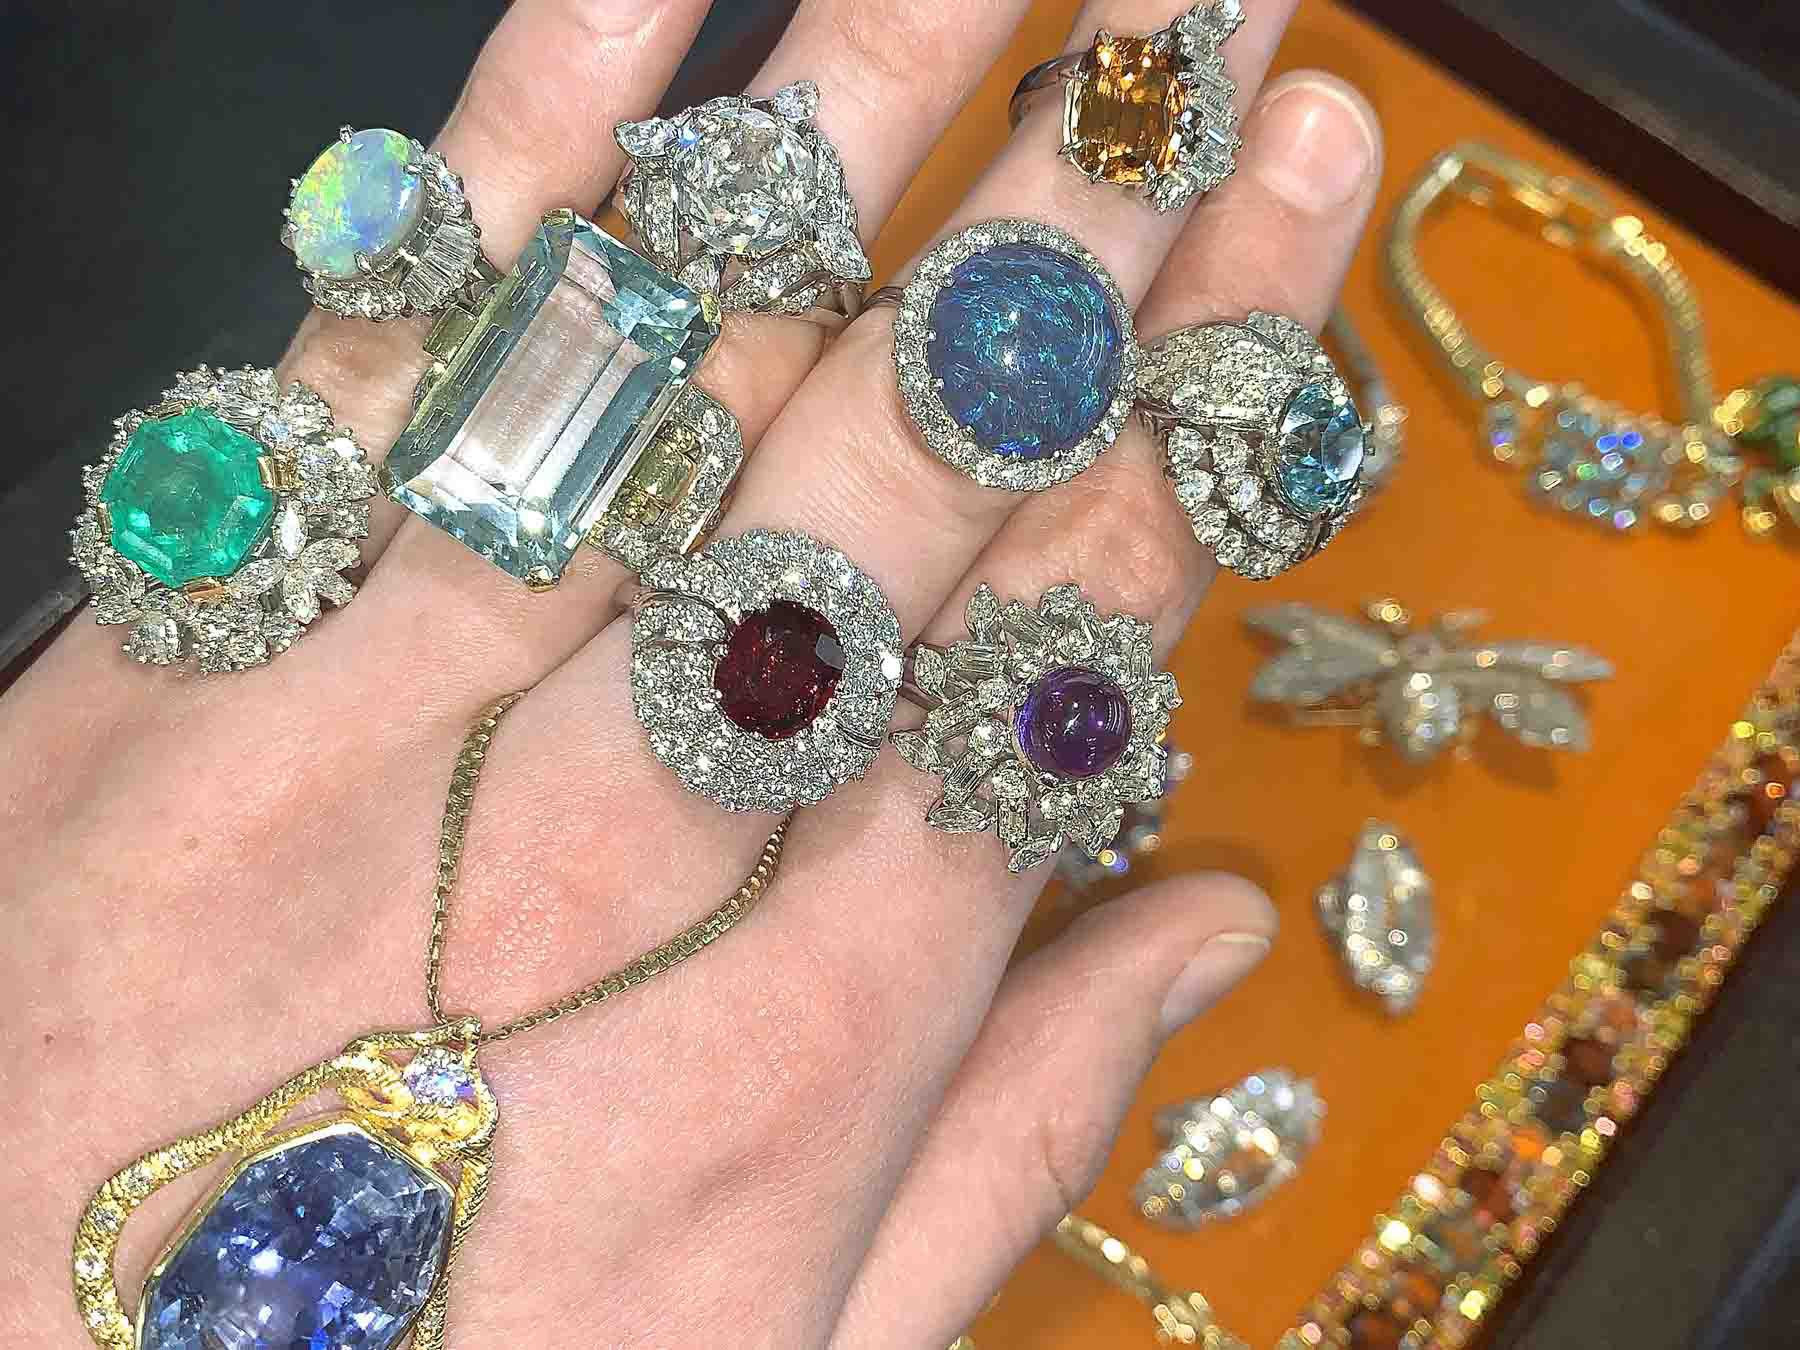 Too Much Jewellery?